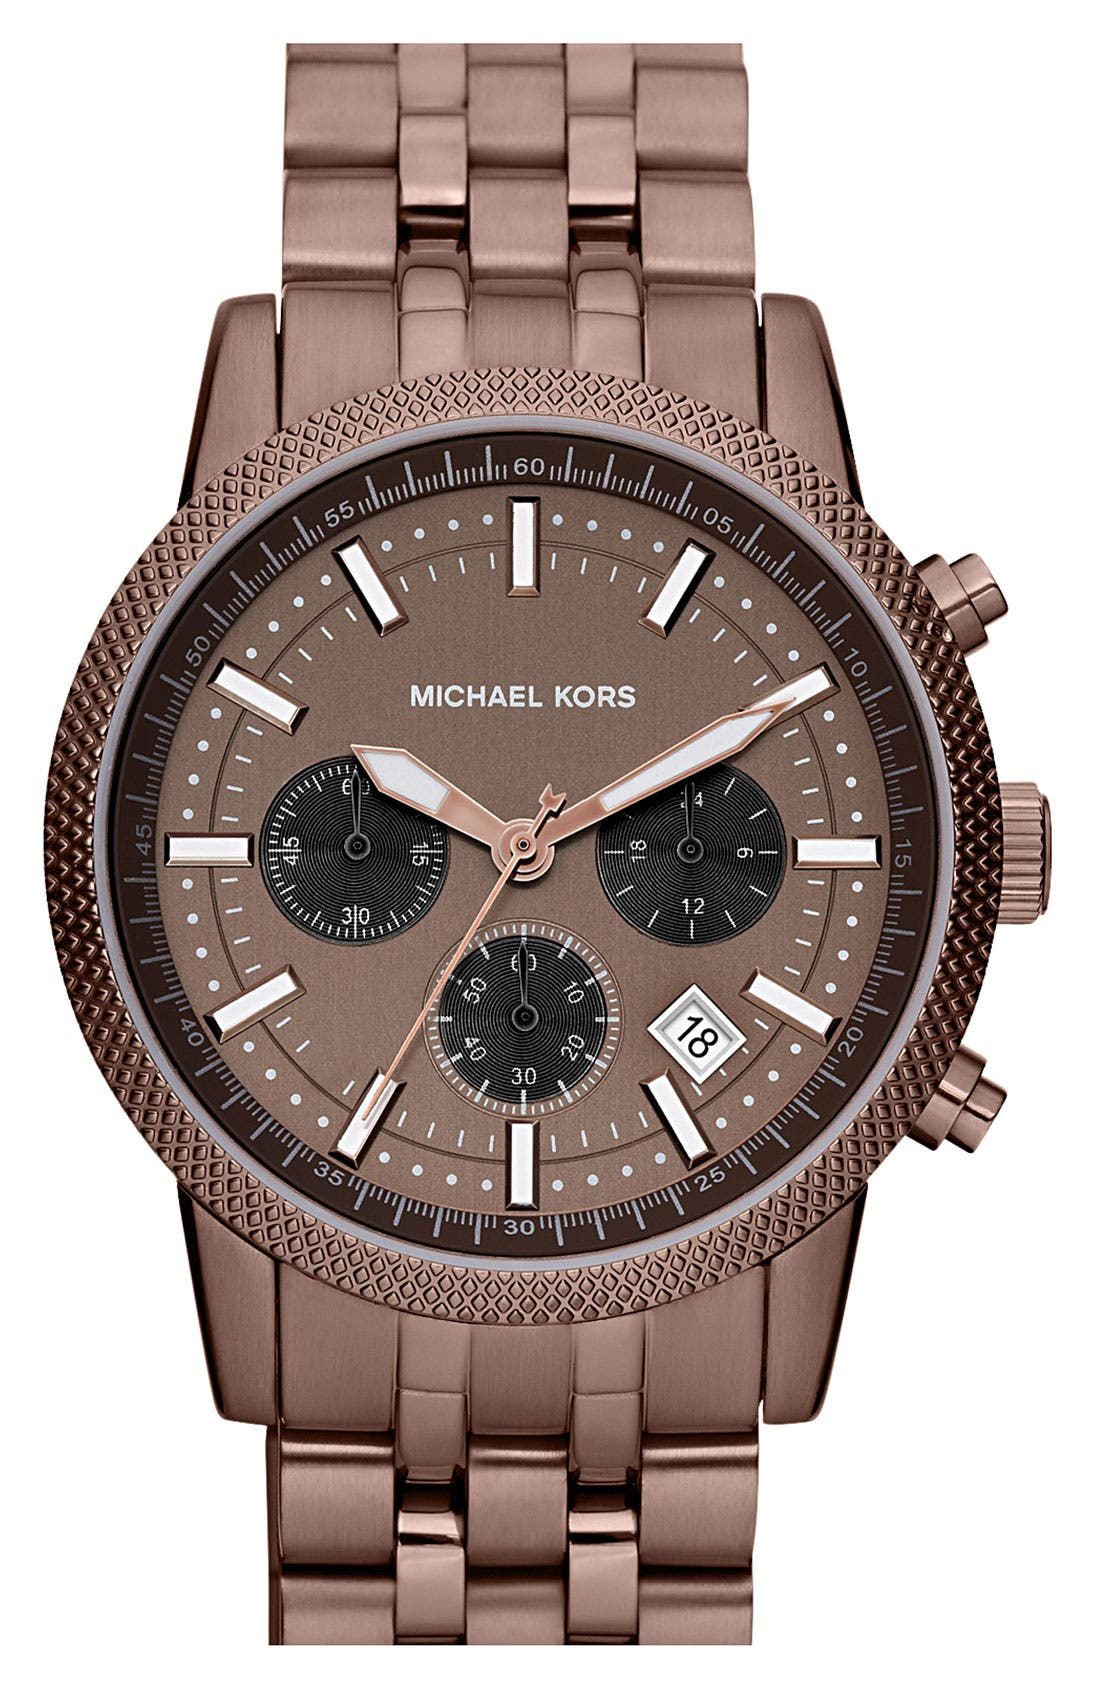 Main Image - Michael Kors 'Scout' Knurled Topring Watch, 43mm